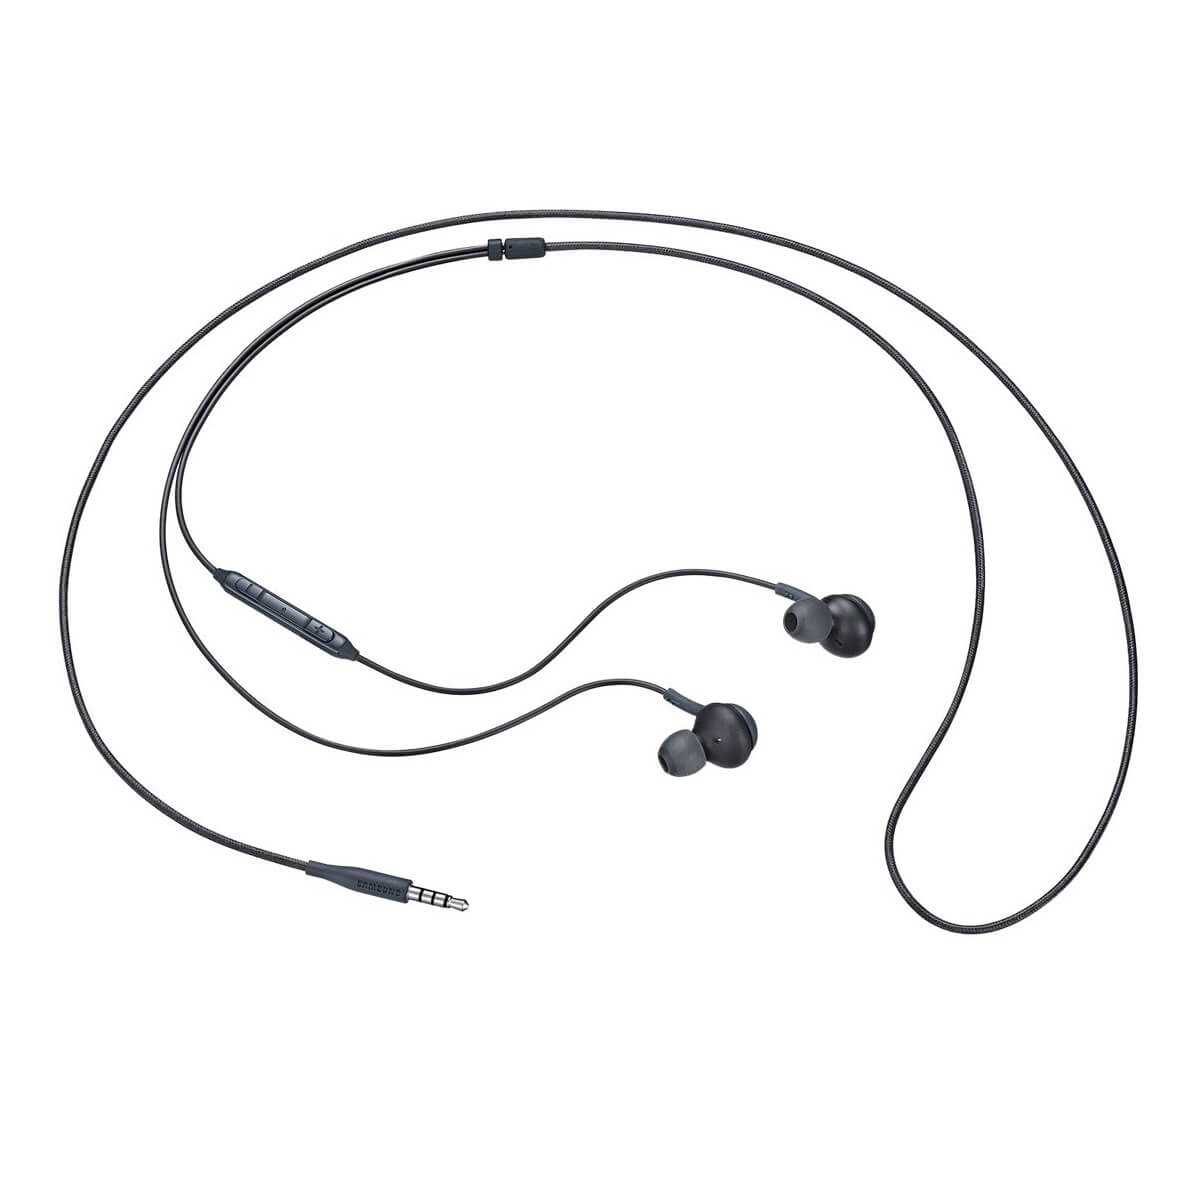 Samsung Earphone Jack Diagram